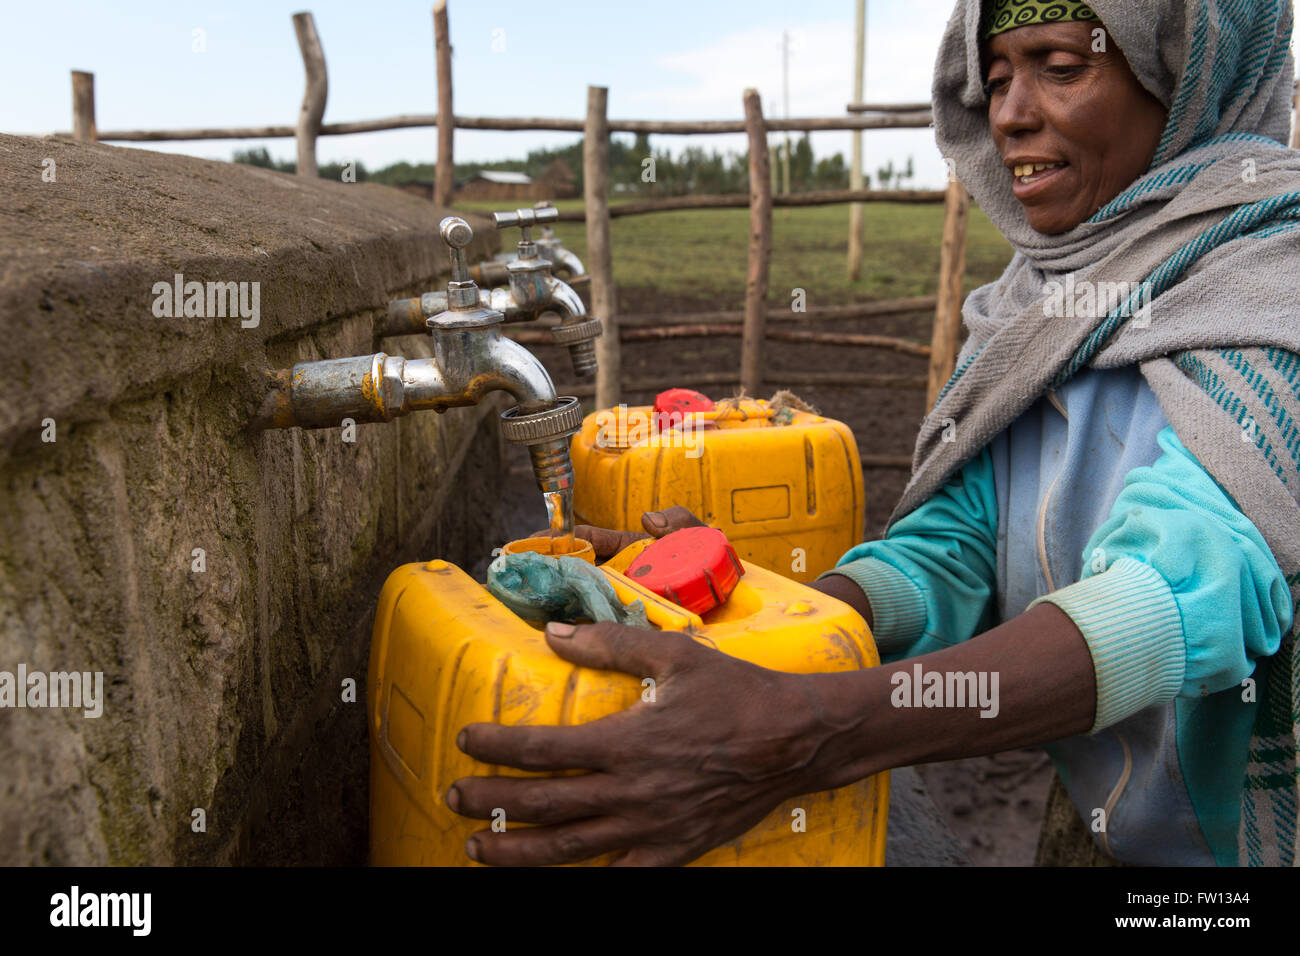 Debre Birhan, Amhara, Ethiopia, October 2013:  Ayelech Segni, 40, fetches water four times a day from this water - Stock Image